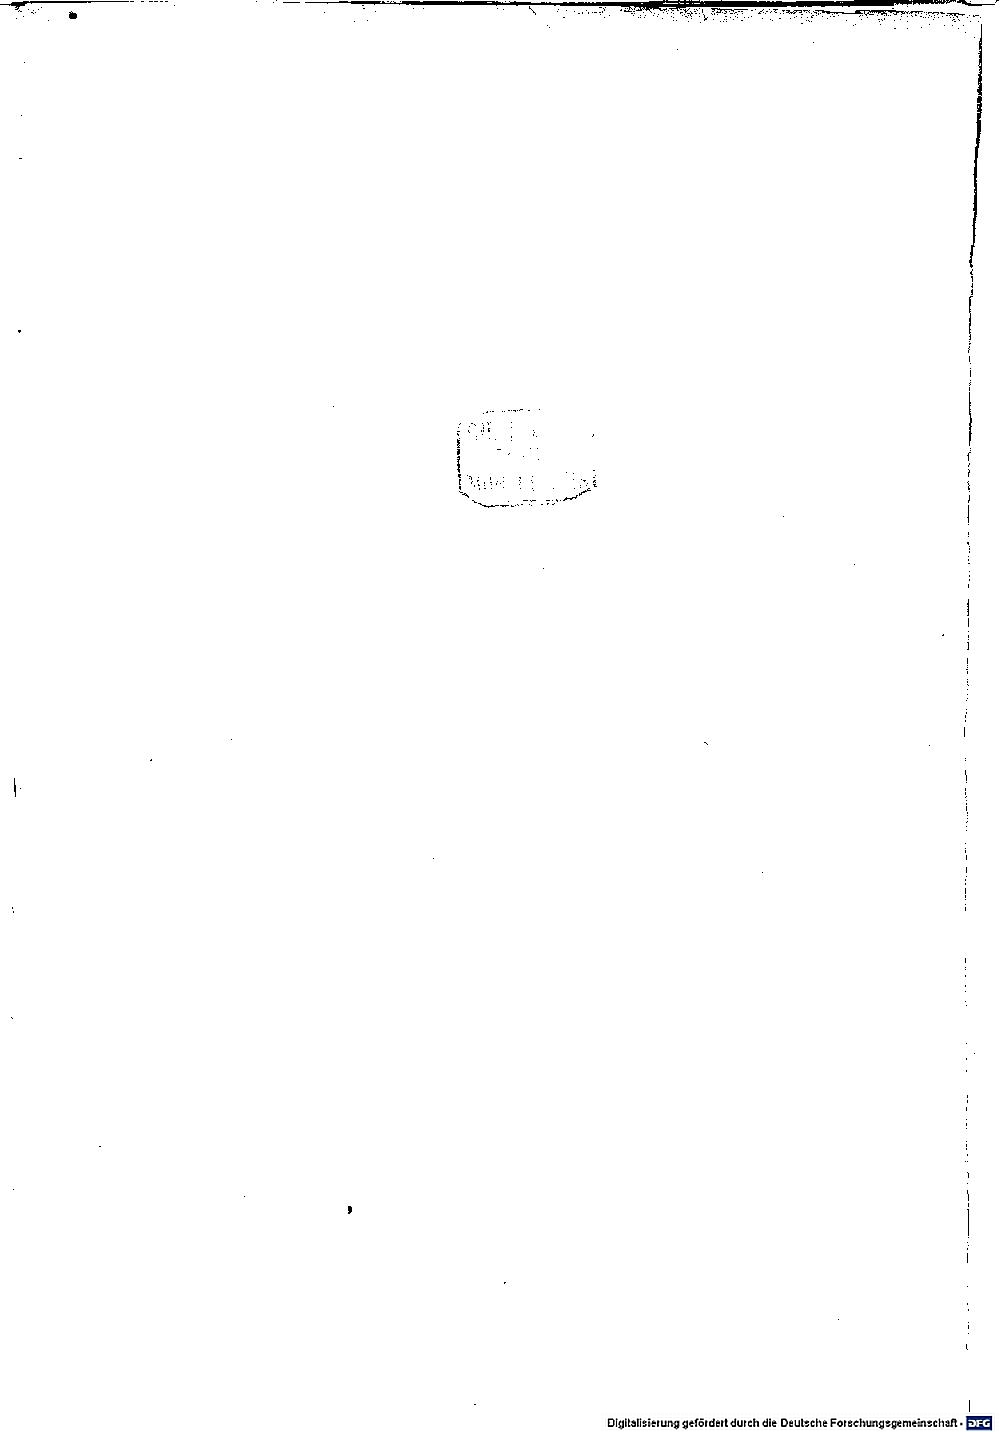 Scan of page II